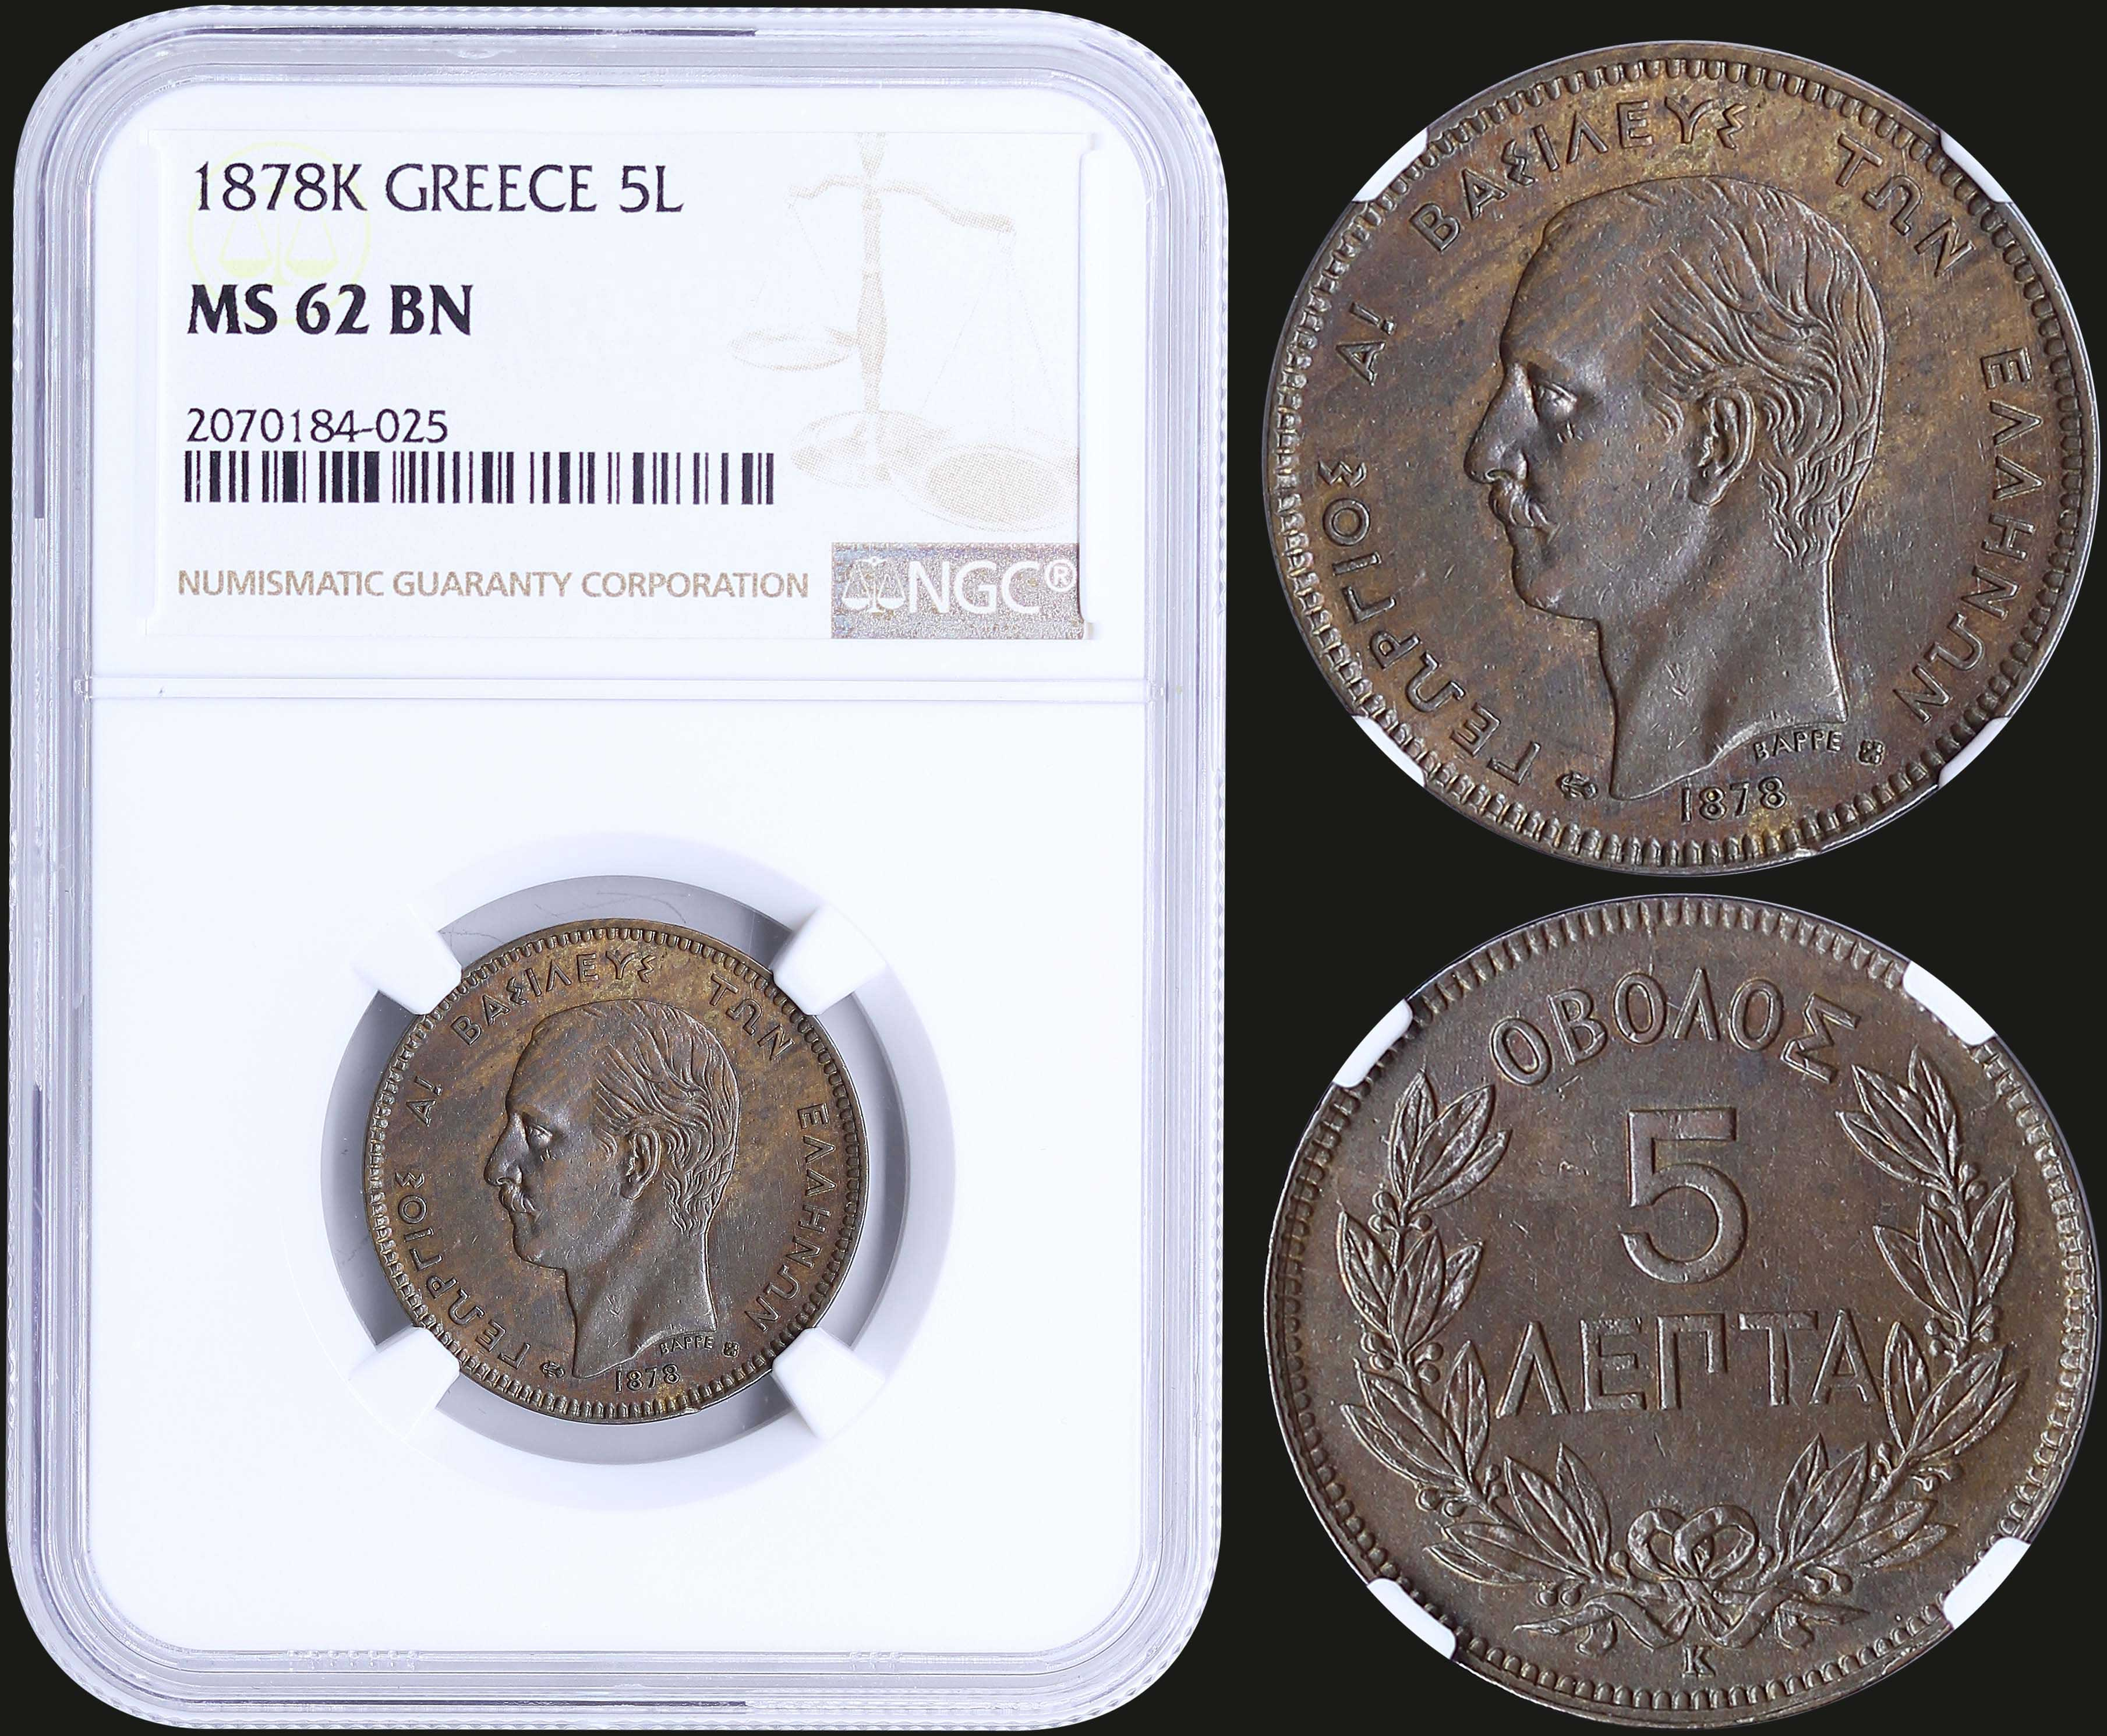 Lot 8137 - -  COINS & TOKENS king george i -  A. Karamitsos Public & Live Bid Auction 644 Coins, Medals & Banknotes